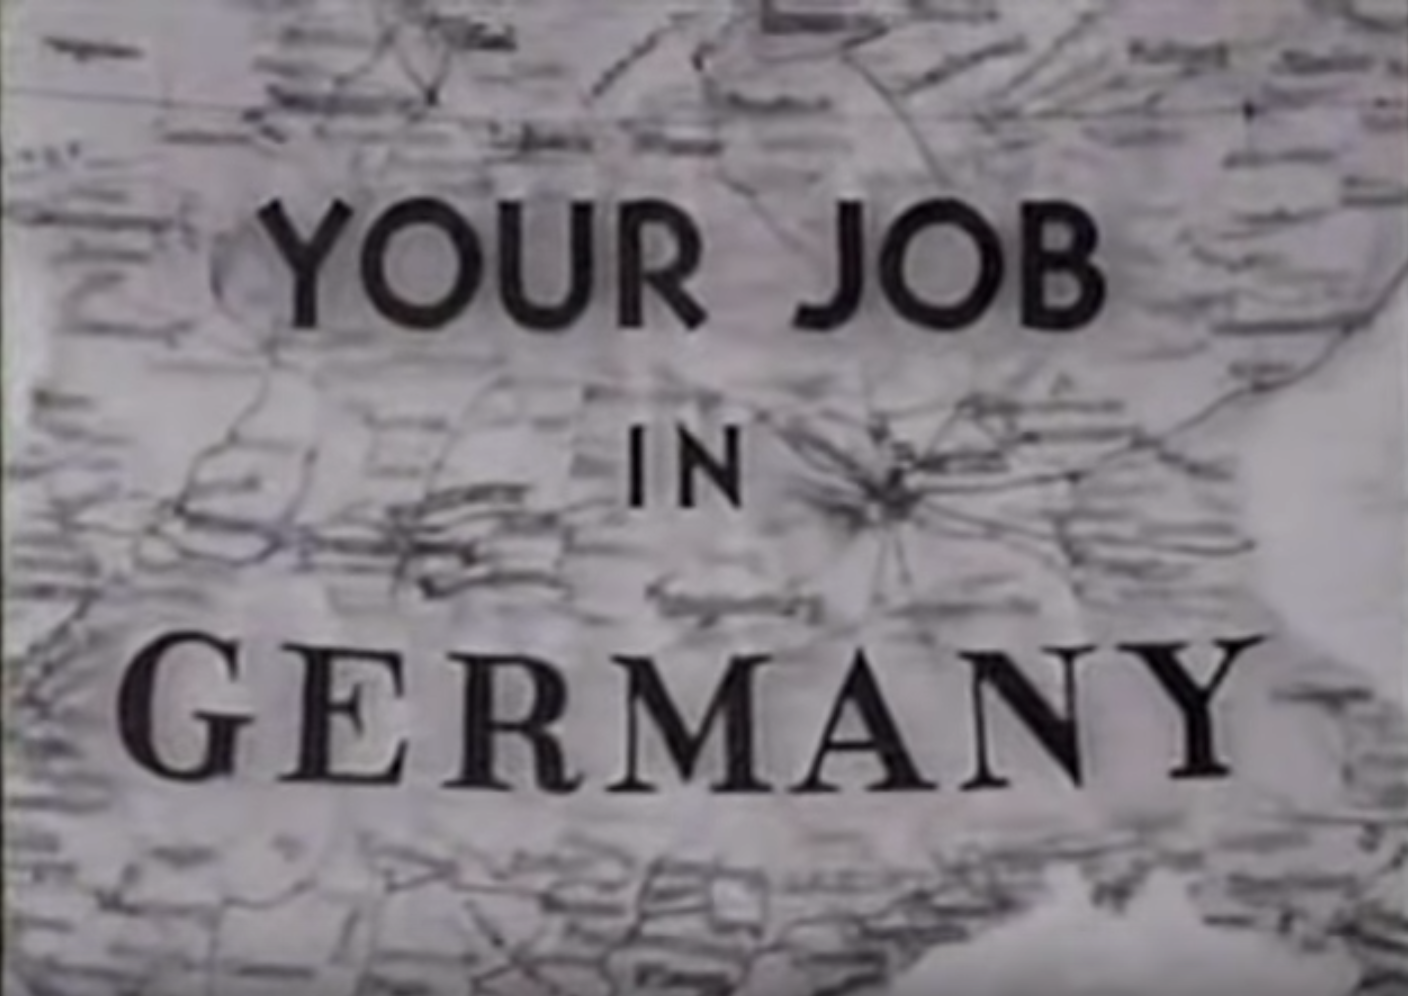 Your Job in Germany - 1946